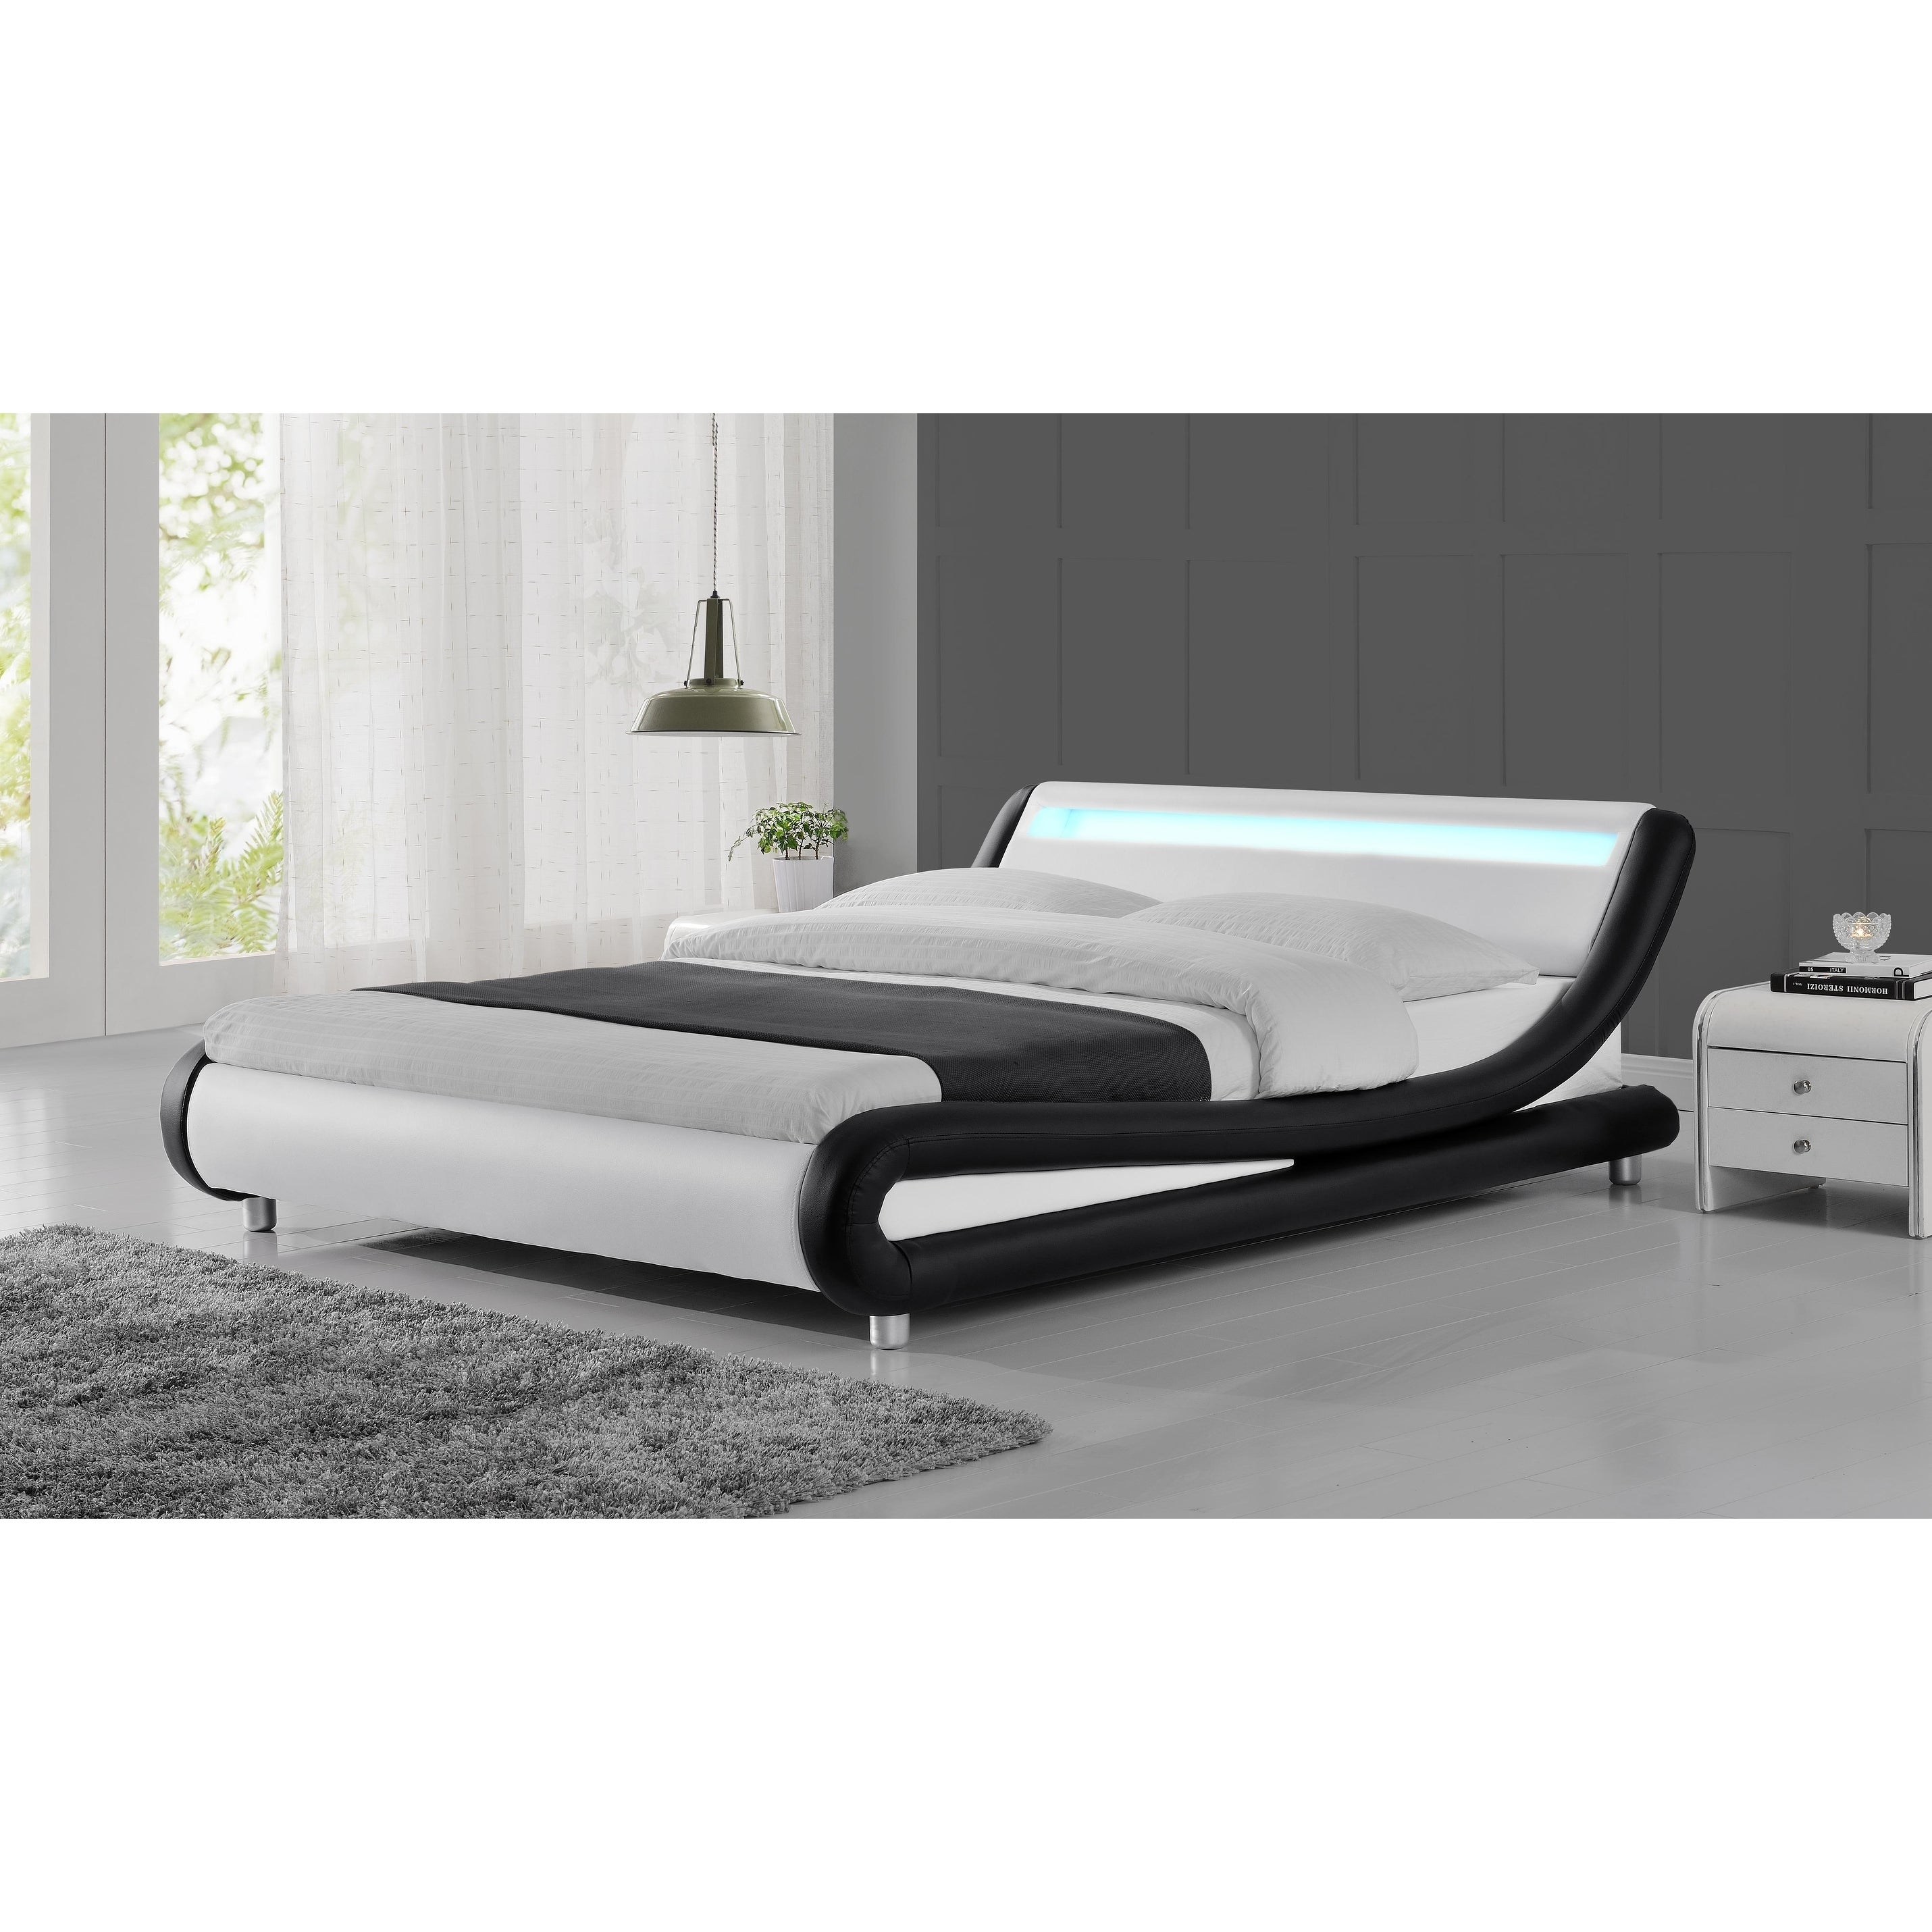 Zender Modern Curved Black And White Platform Bed On Sale Overstock 27617431